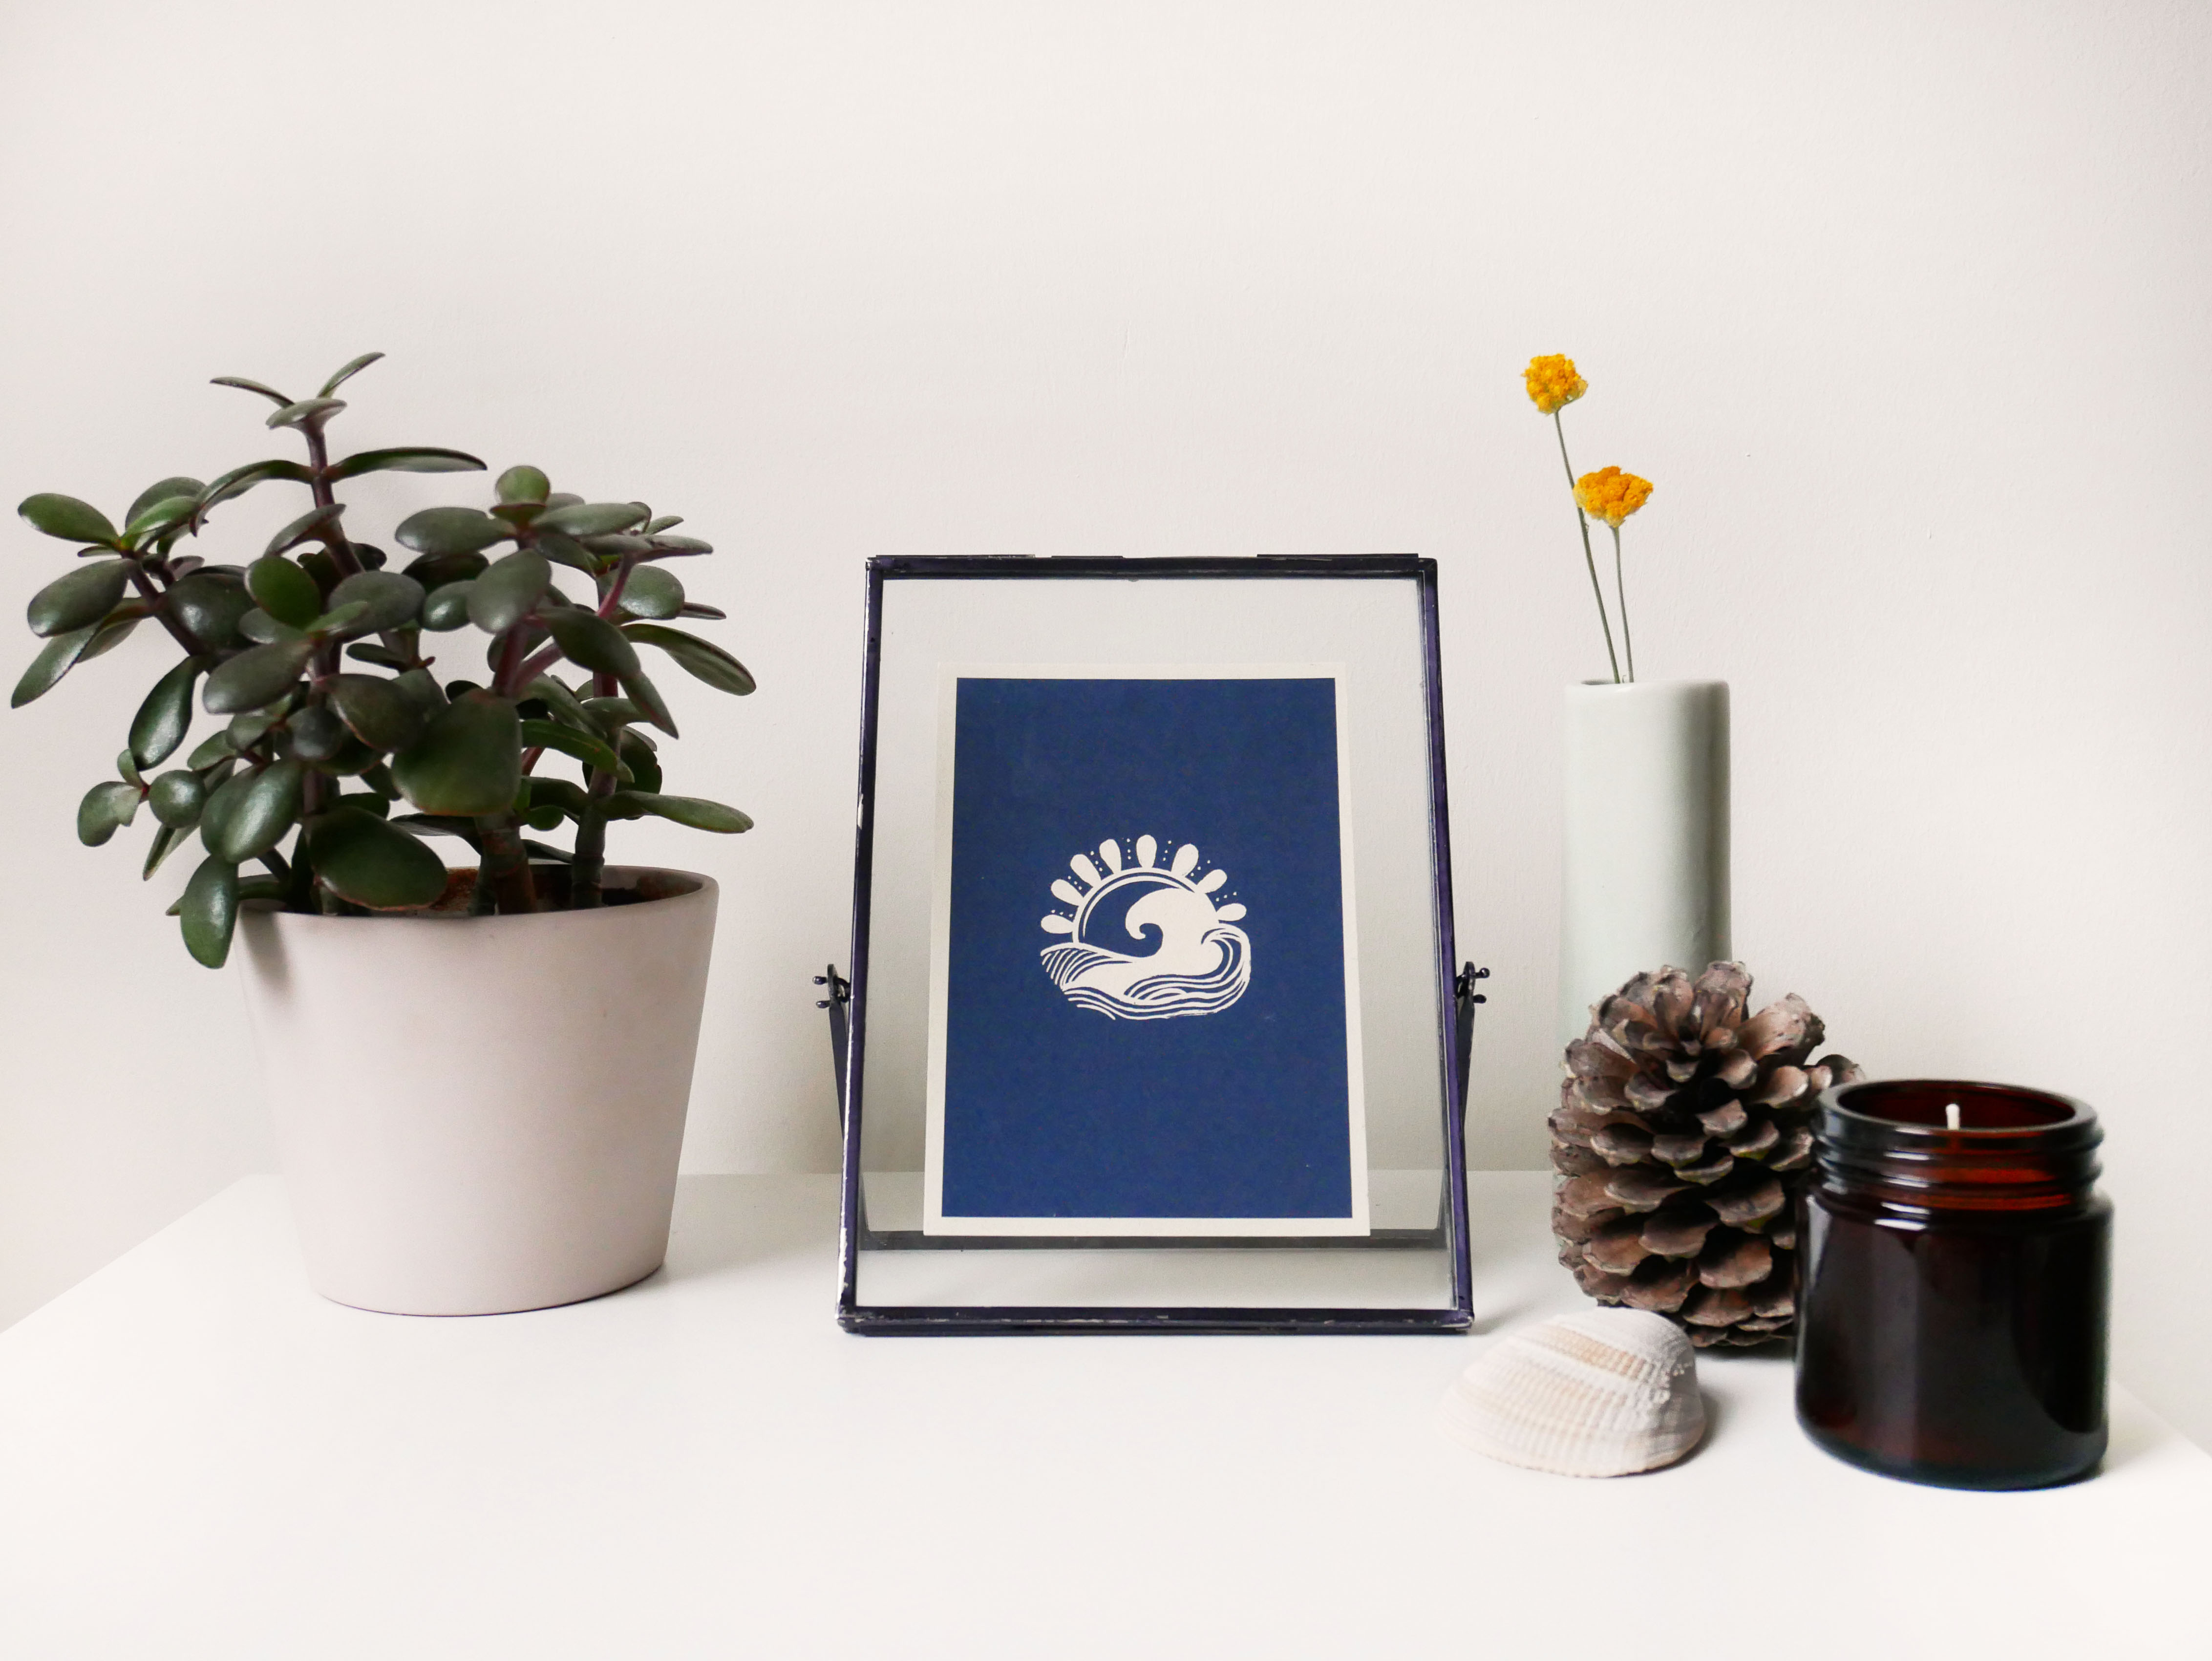 Decorative illustration in a black frame next to a green plant, candle, shell, pine cone and decorative vase